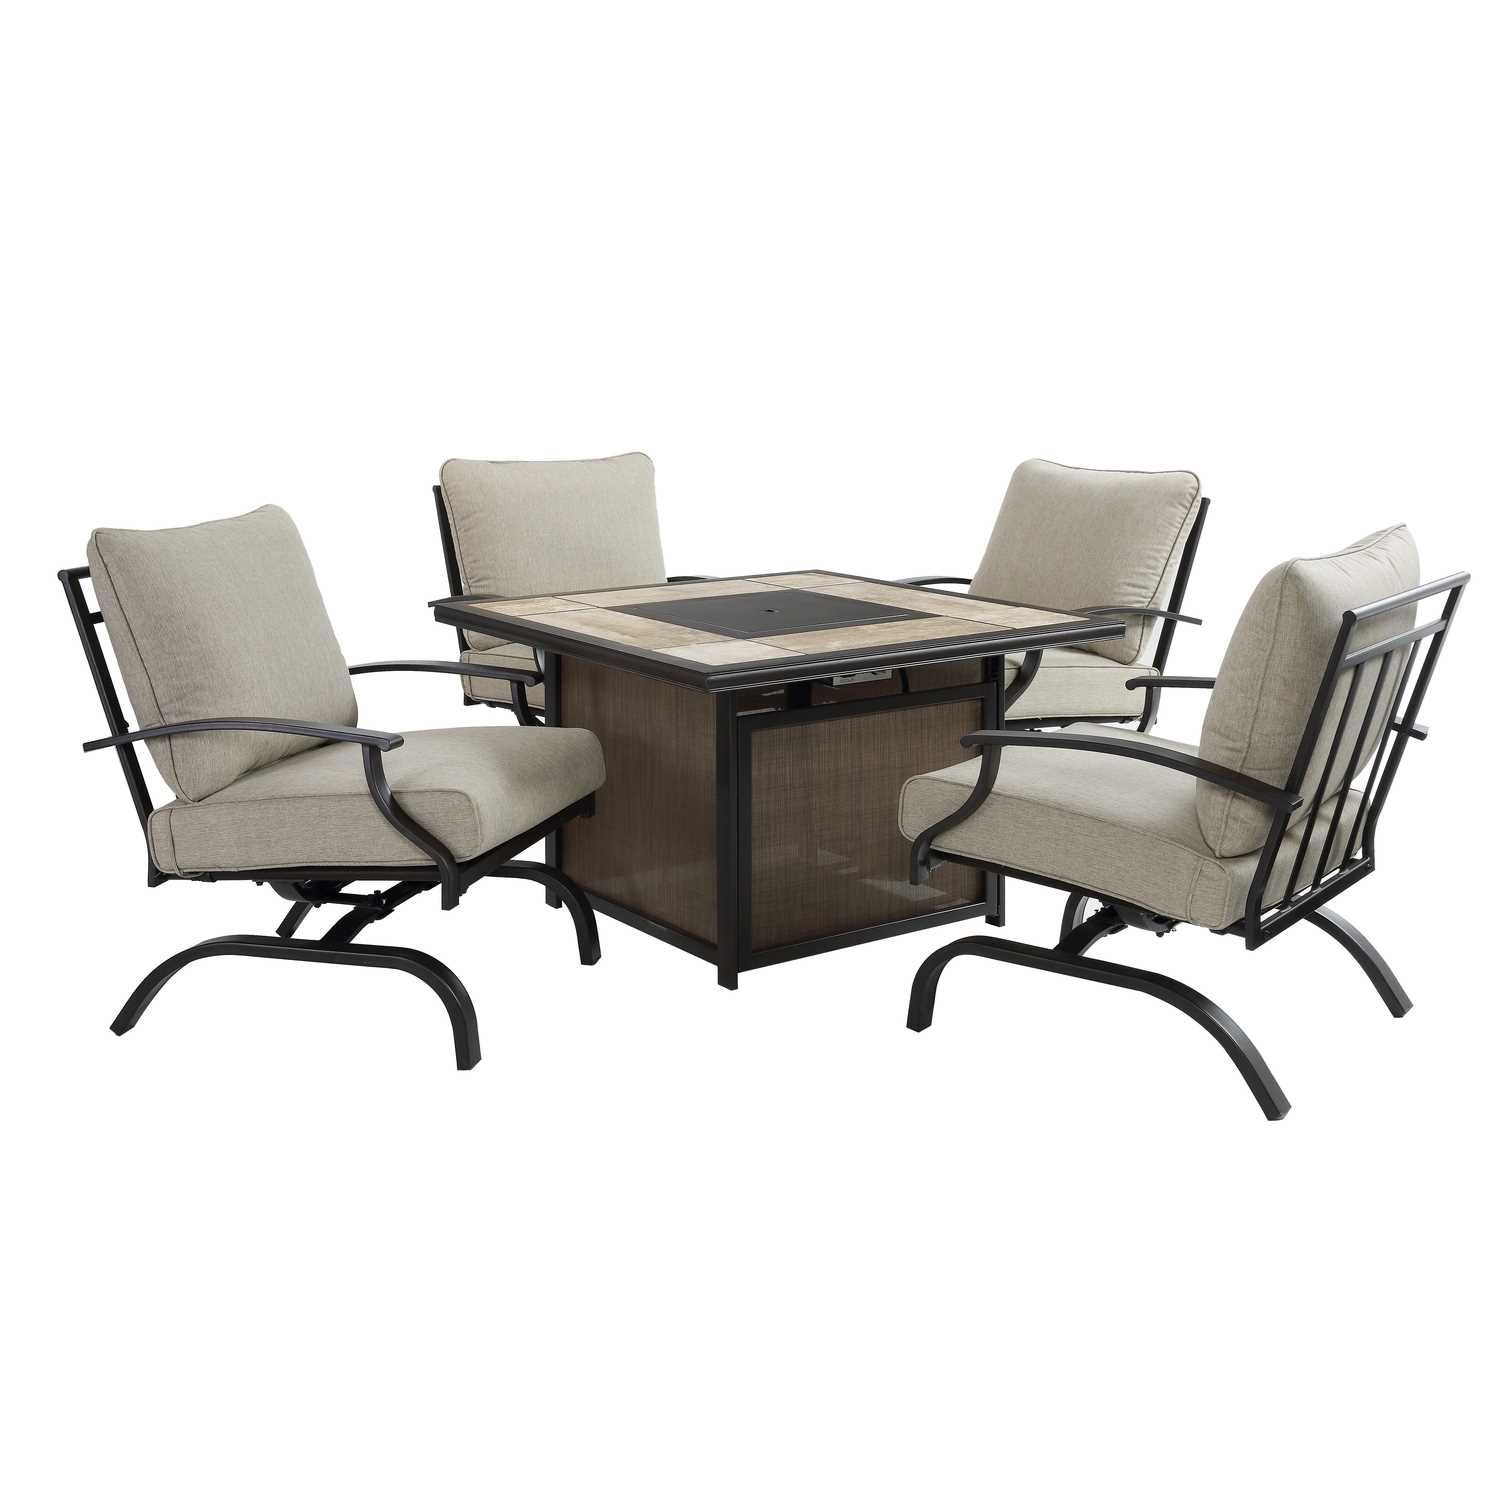 Living Accents 5 pc. Halsted Patio Set - Ace Hardware ... on Ace Outdoor Living id=12818